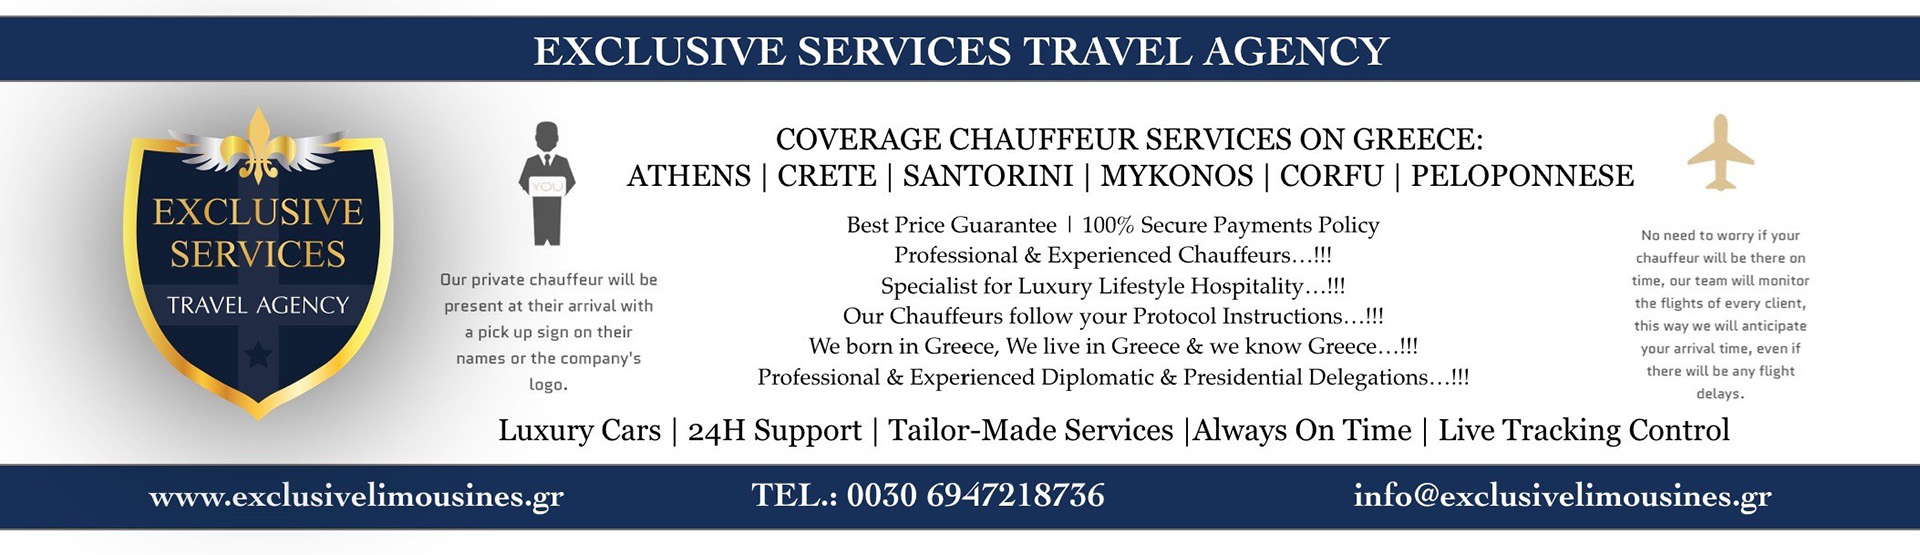 Exclusive Services Travel Agency